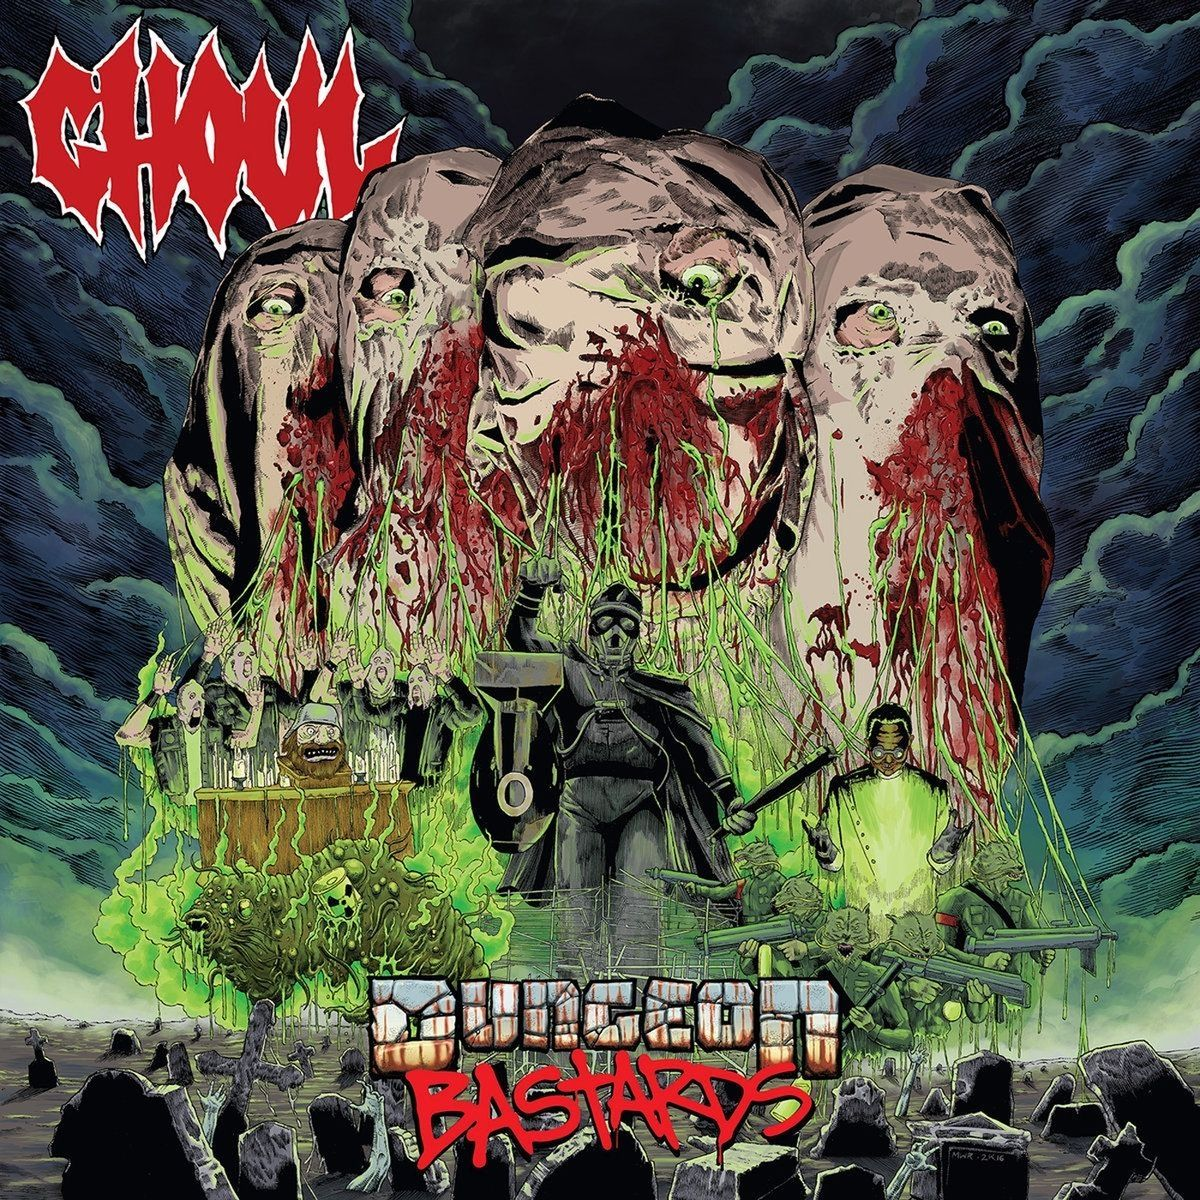 Ghoul - Dungeon Bastards (2016)